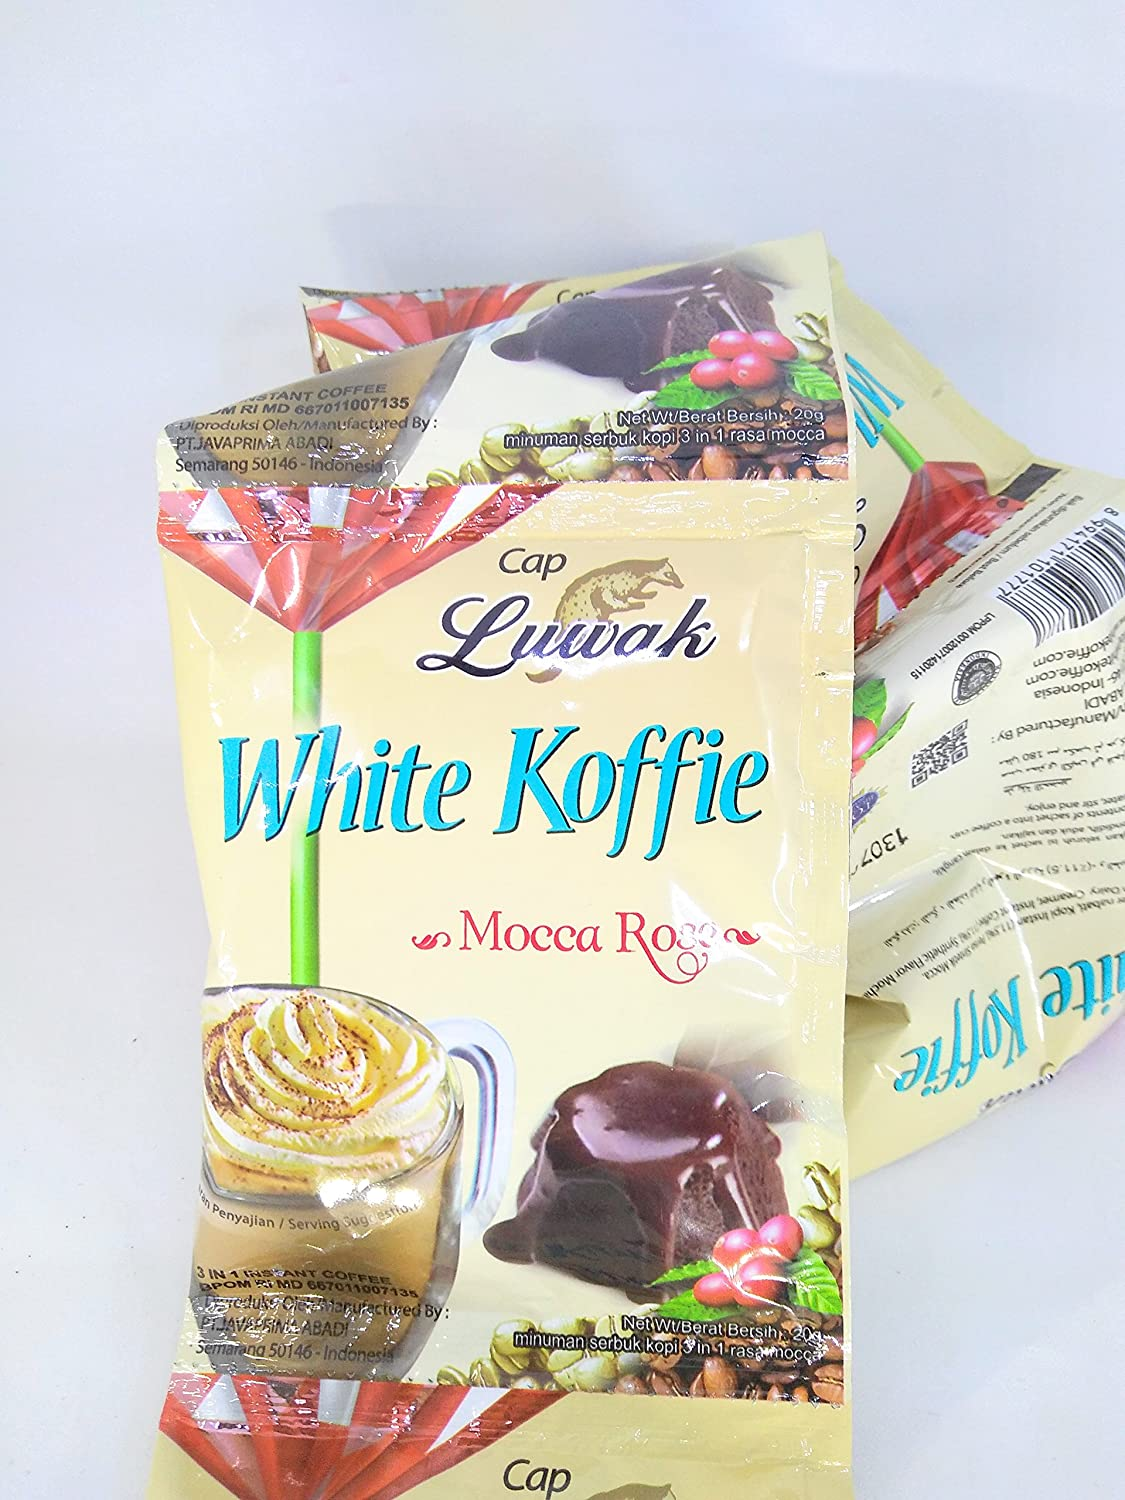 Amazon.com : Kopi Luwak White Koffie Original (3 in 1) Instant Coffee Mocca Rose Flavor, Single Pack 20 Gram (30 Sachets) : Grocery & Gourmet Food